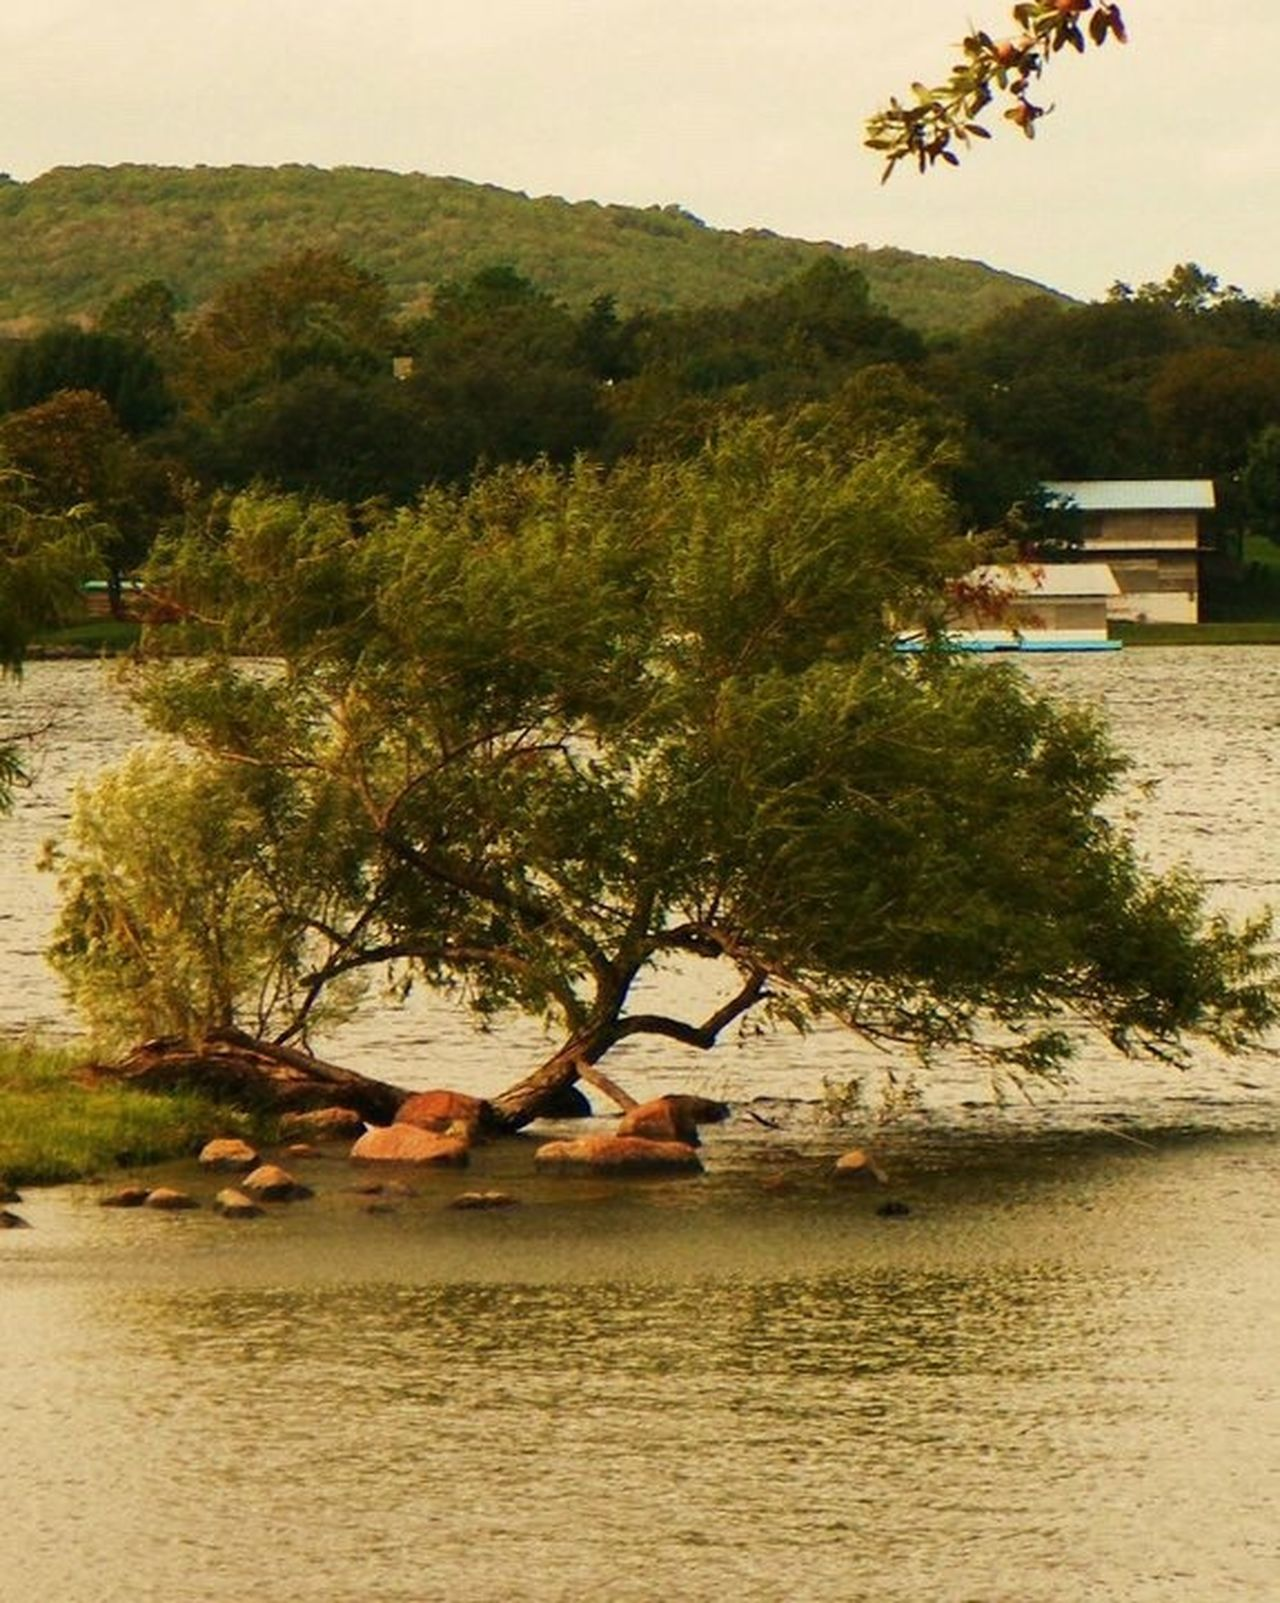 Outdoor Photography Wildlife & Nature Nature Texas White Rock Lake Dallas Enjoying Life No One Around Scerene Still Life Art Tree Water Sunset Pond